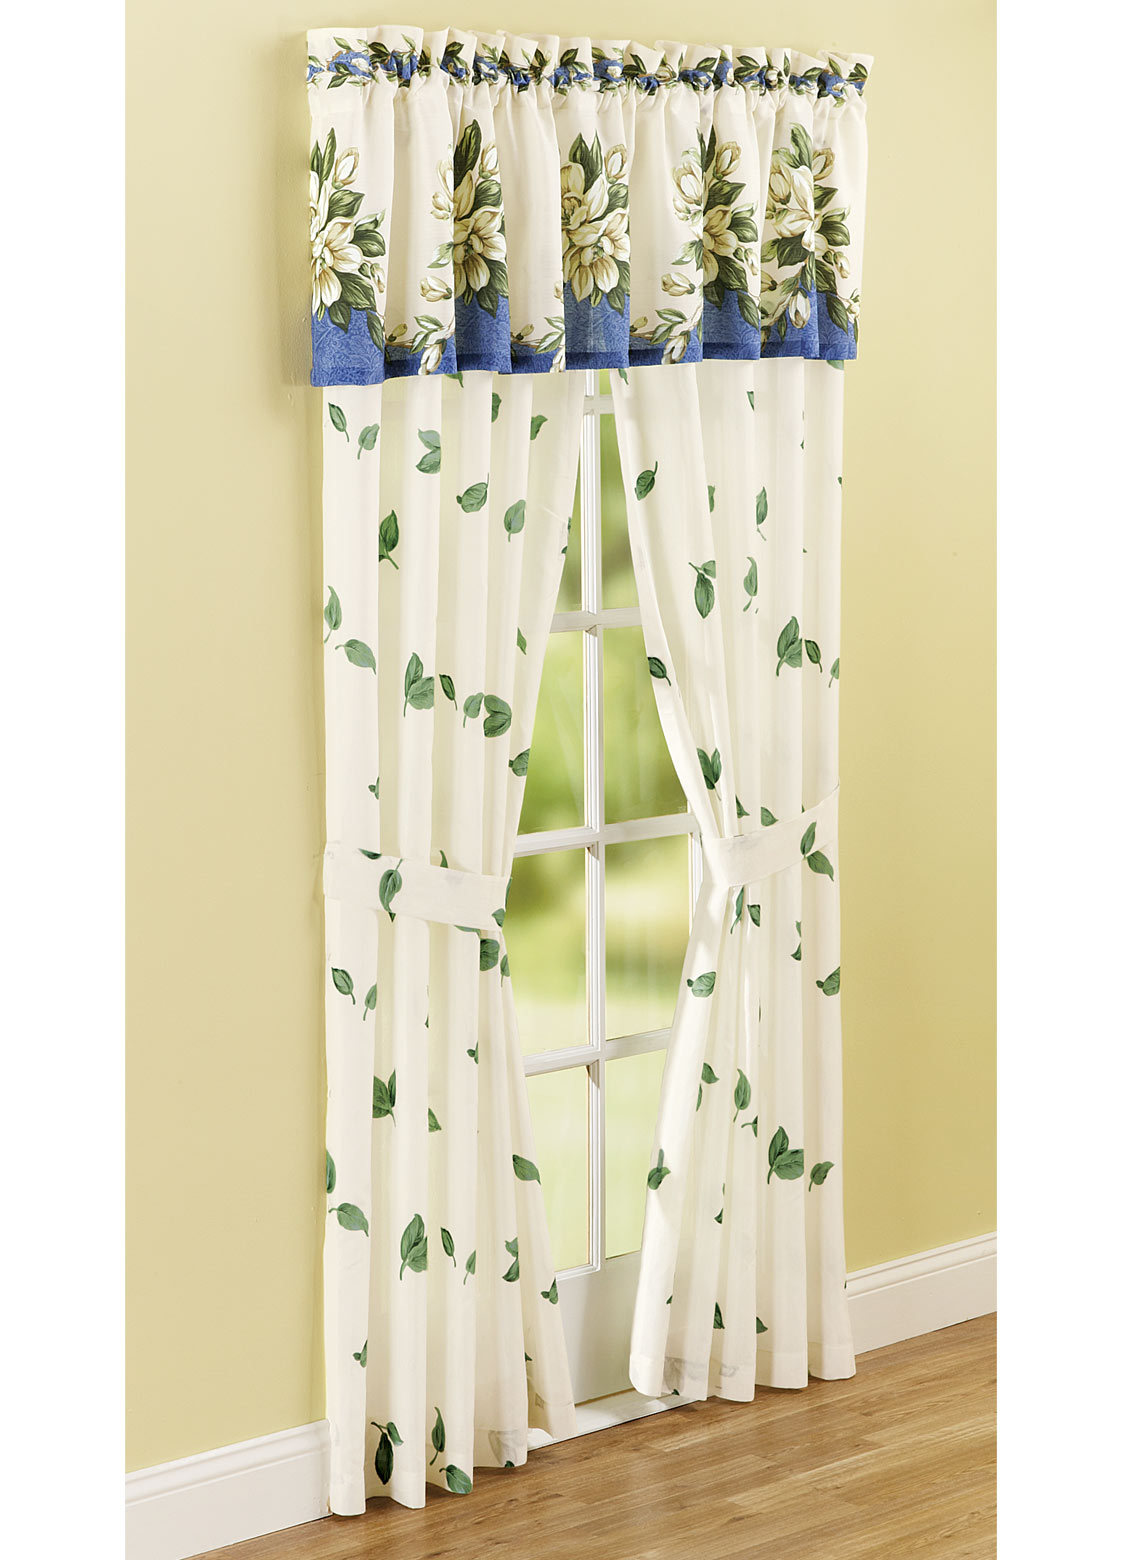 magnolia curtains and accessories | carolwrightgifts